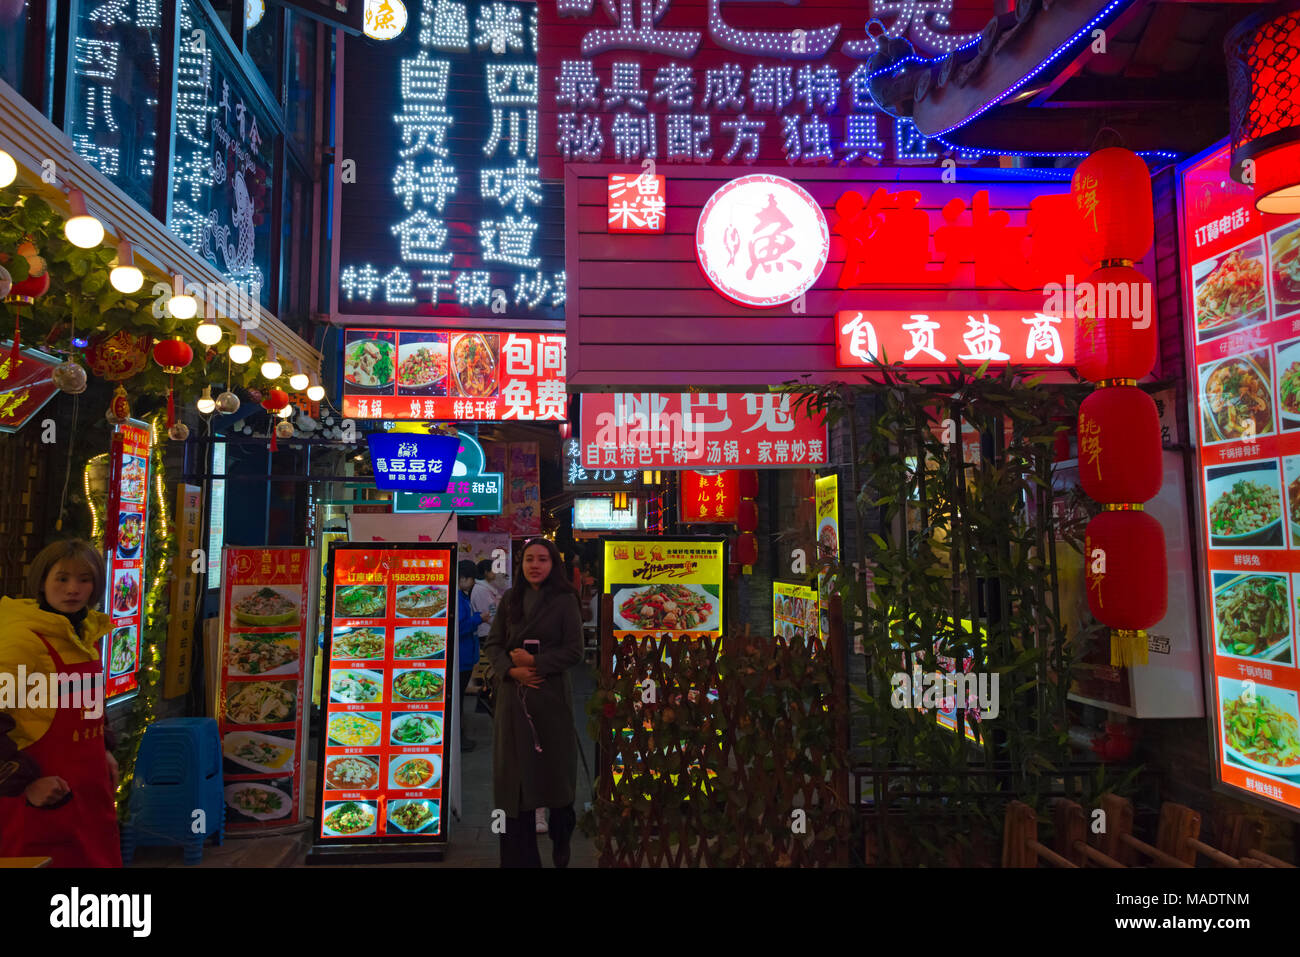 Night market, Chengdu, Sichuan Province, China - Stock Image